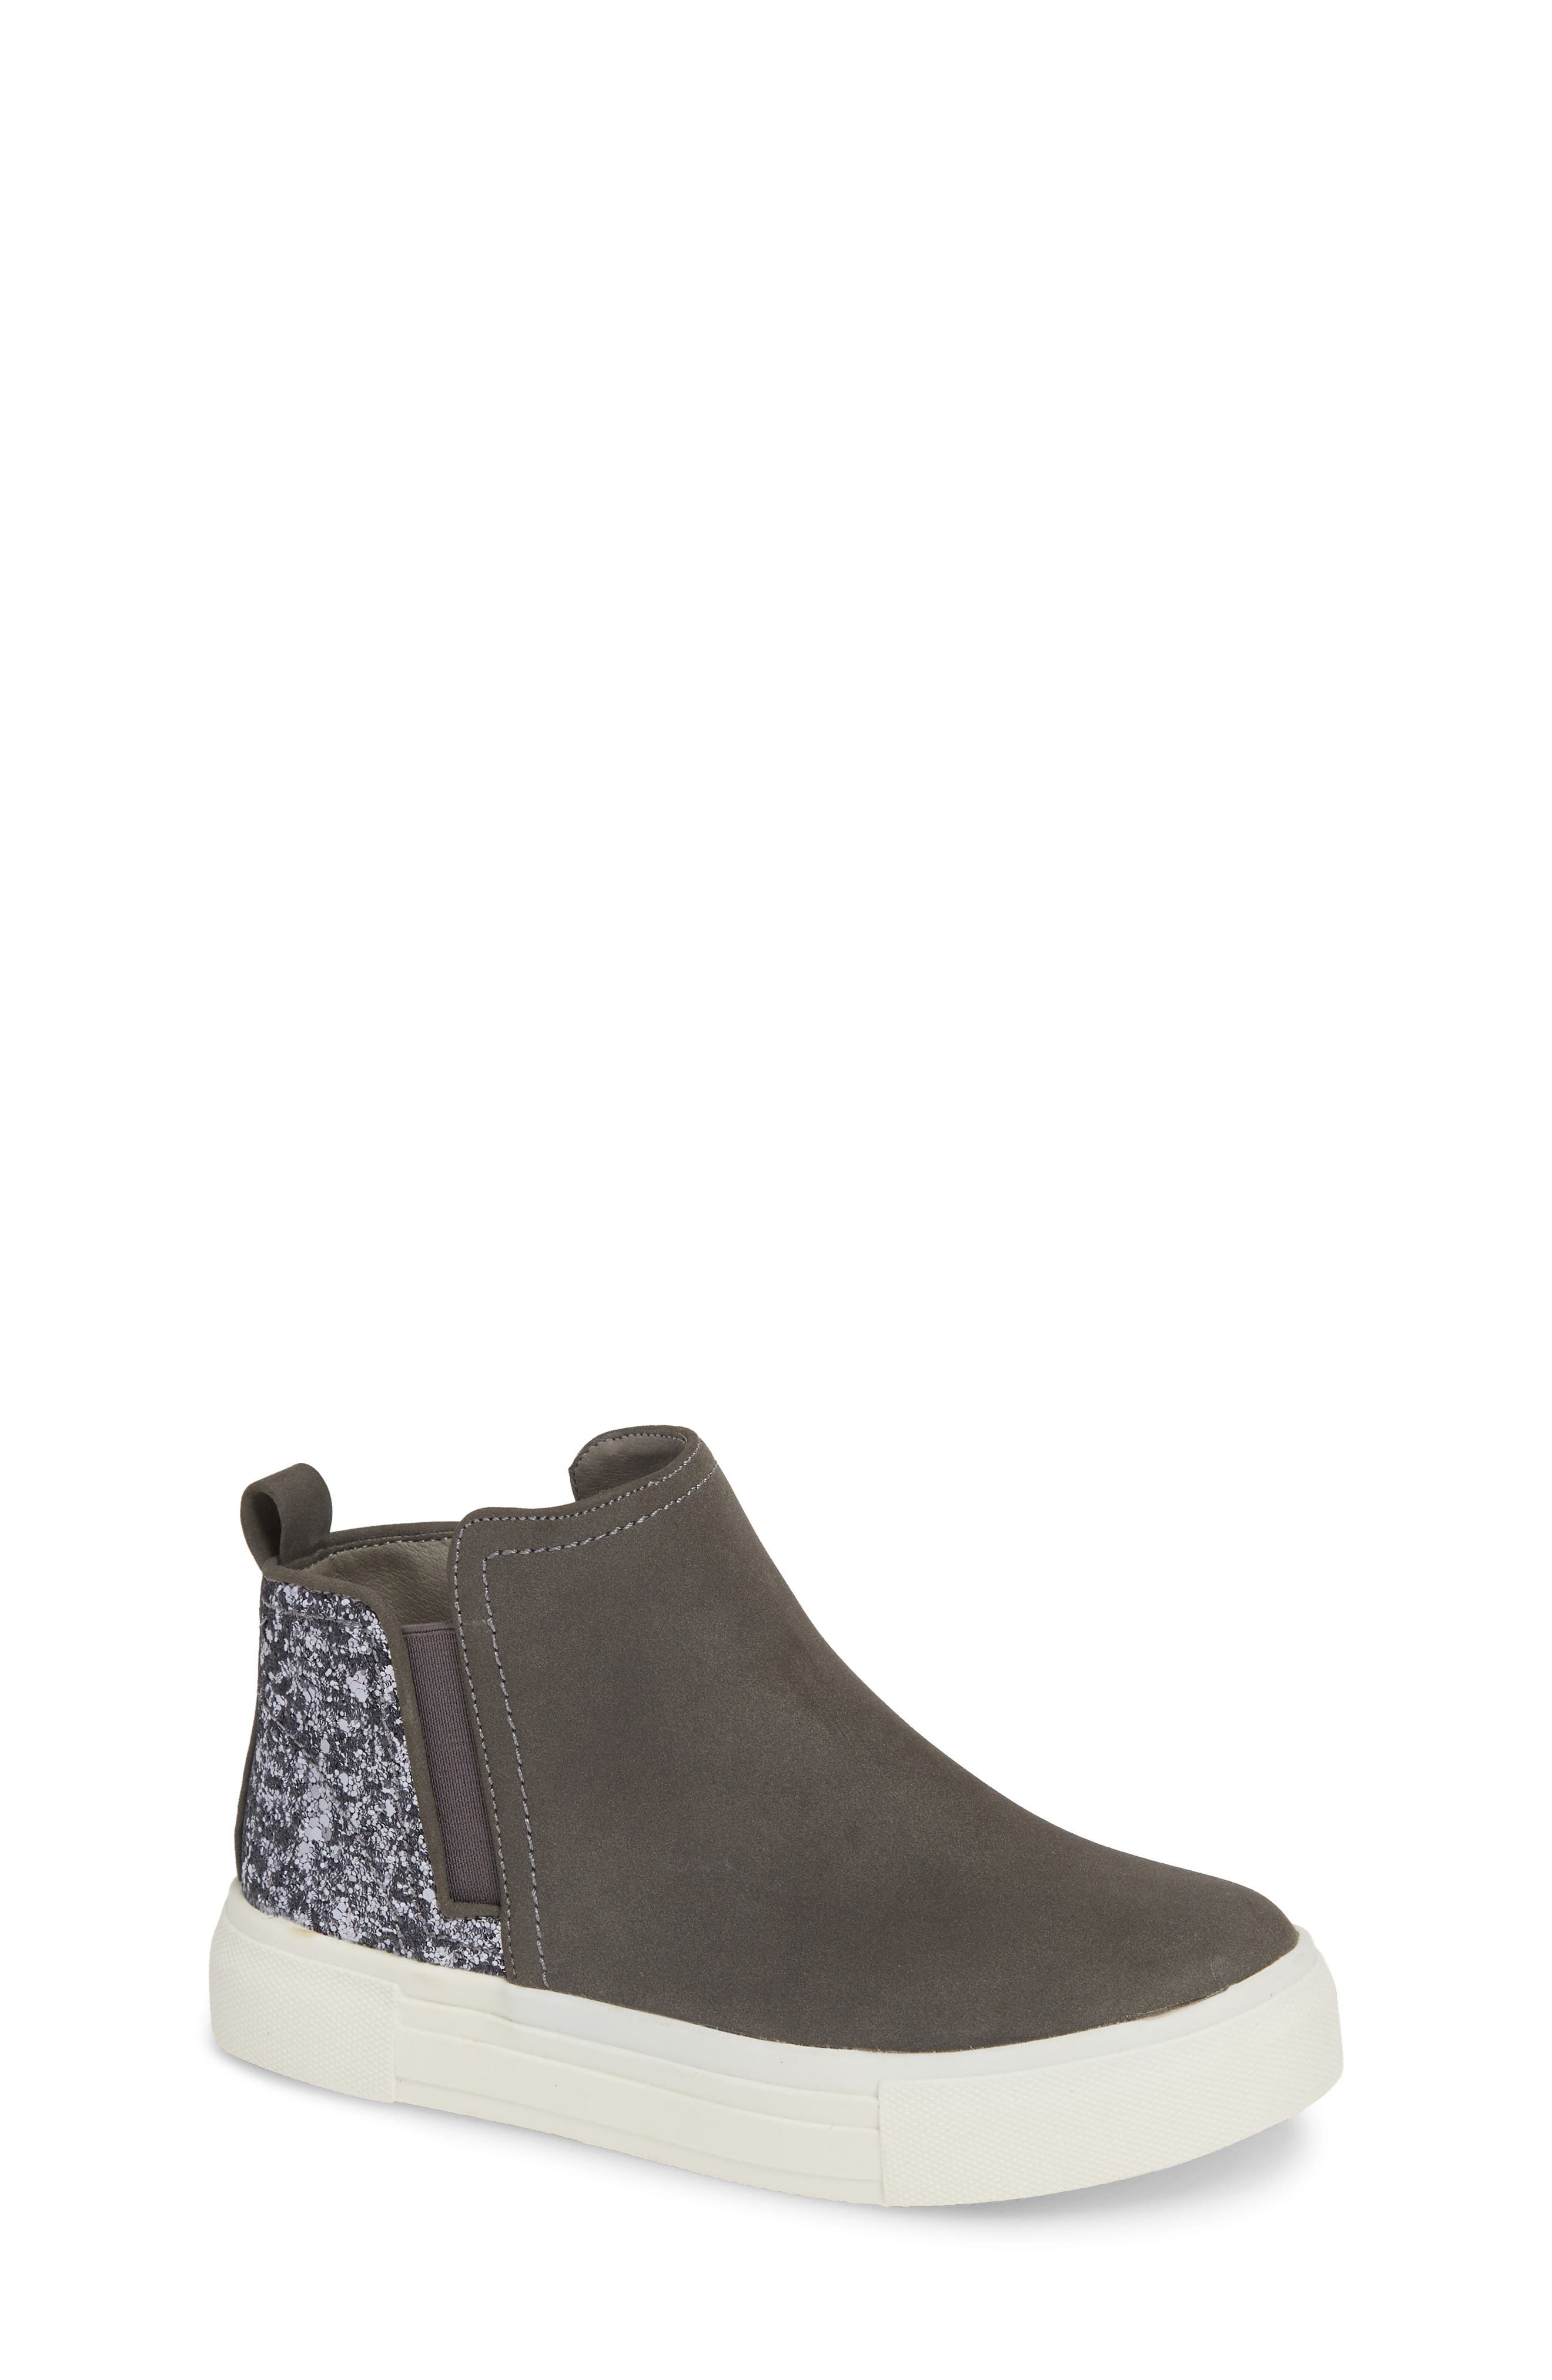 DOLCE VITA Pull-On Glitter Bootie Sneaker, Main, color, SLATE